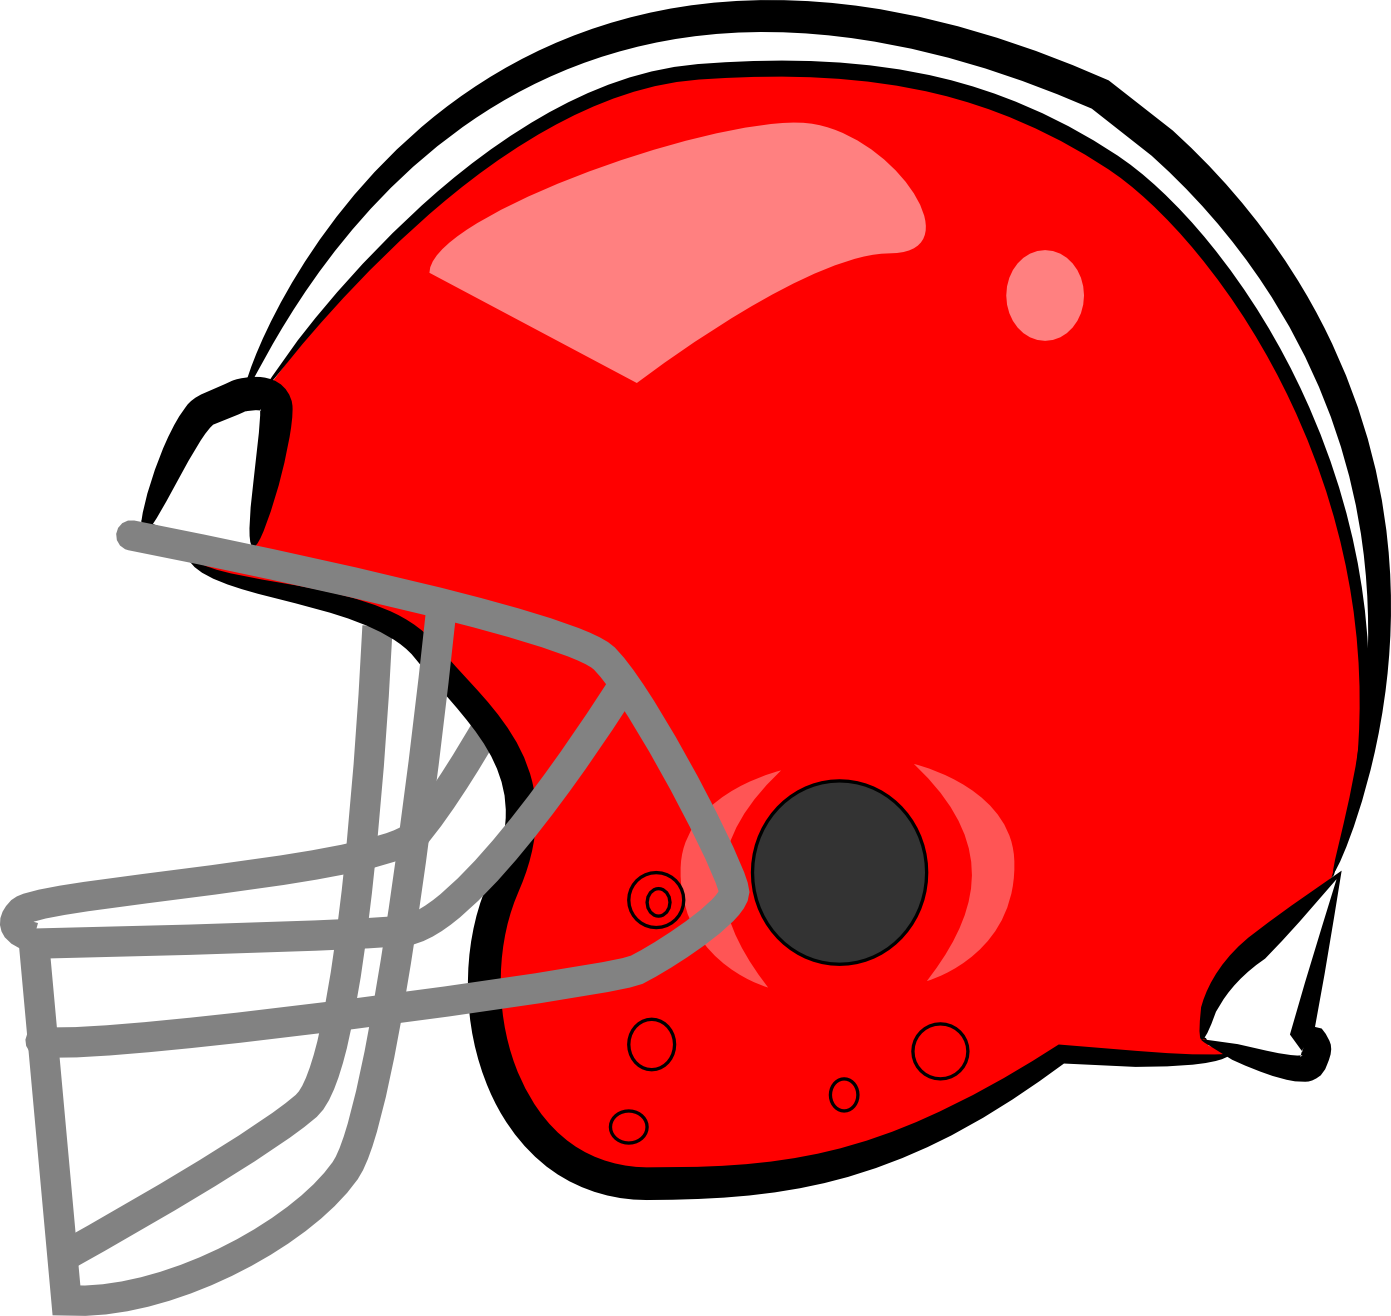 Ohio state football clipart free picture royalty free library Alabama Football Clipart at GetDrawings.com | Free for personal use ... picture royalty free library